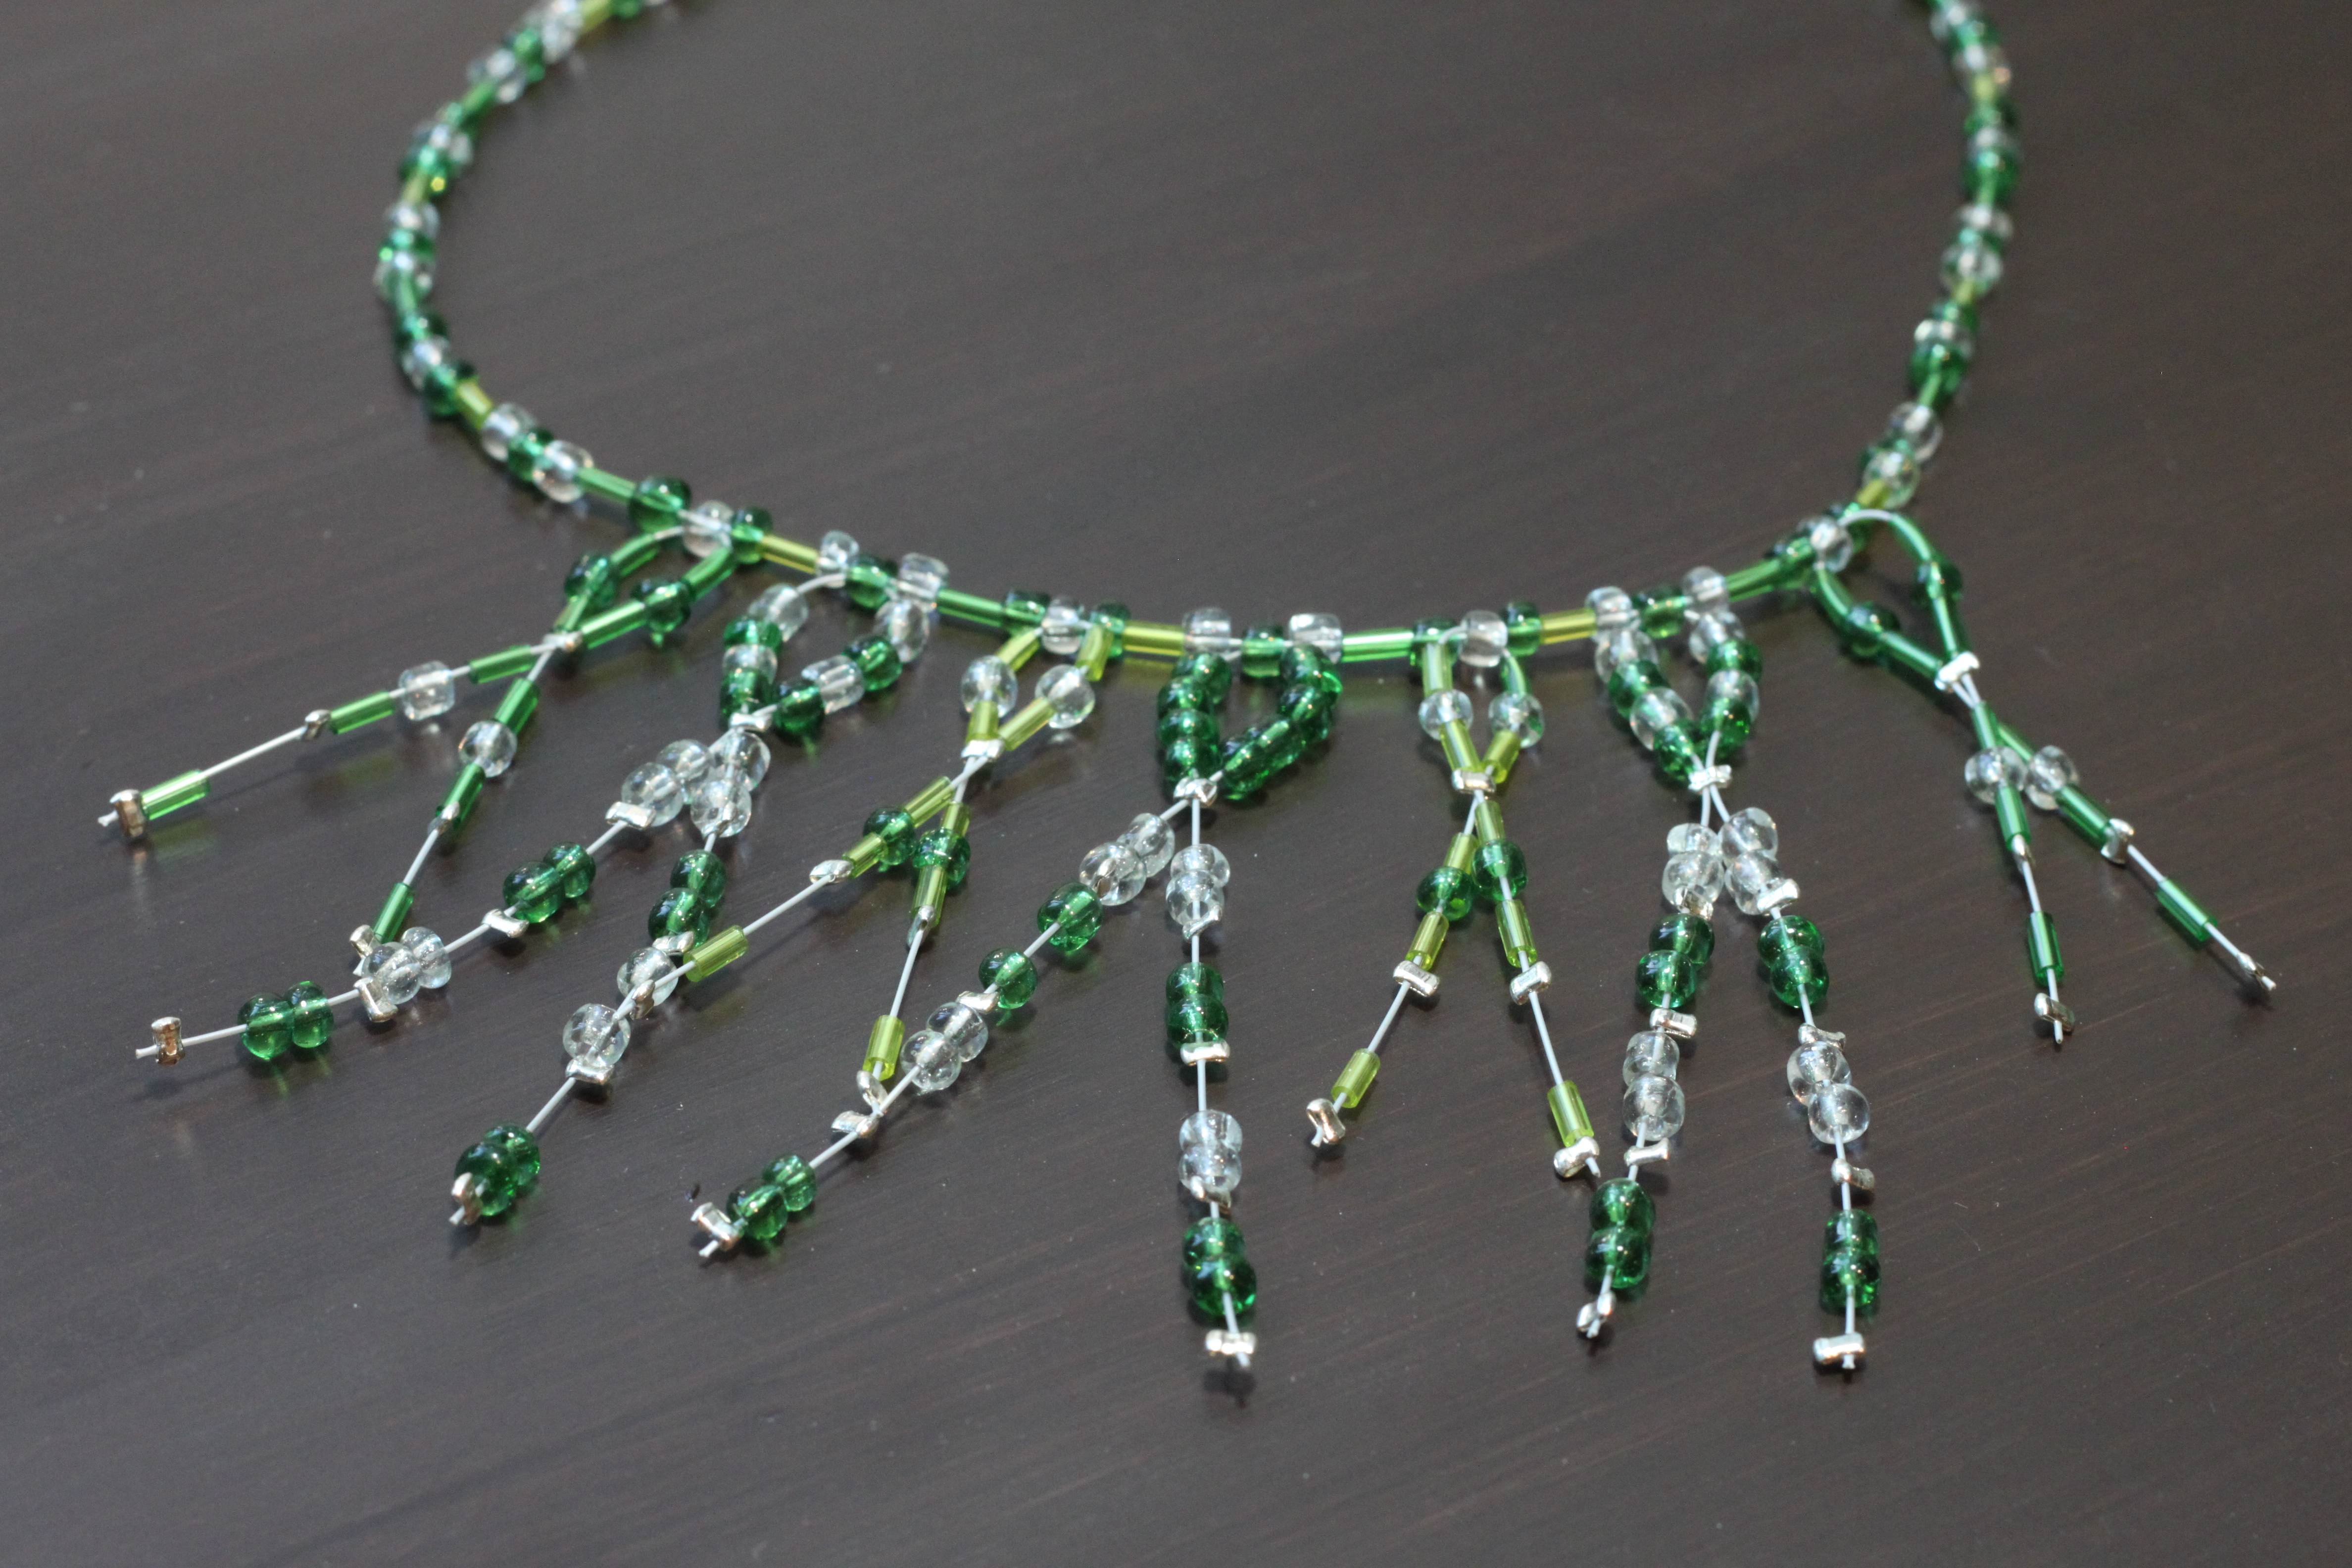 Necklace with crystal emerald beads